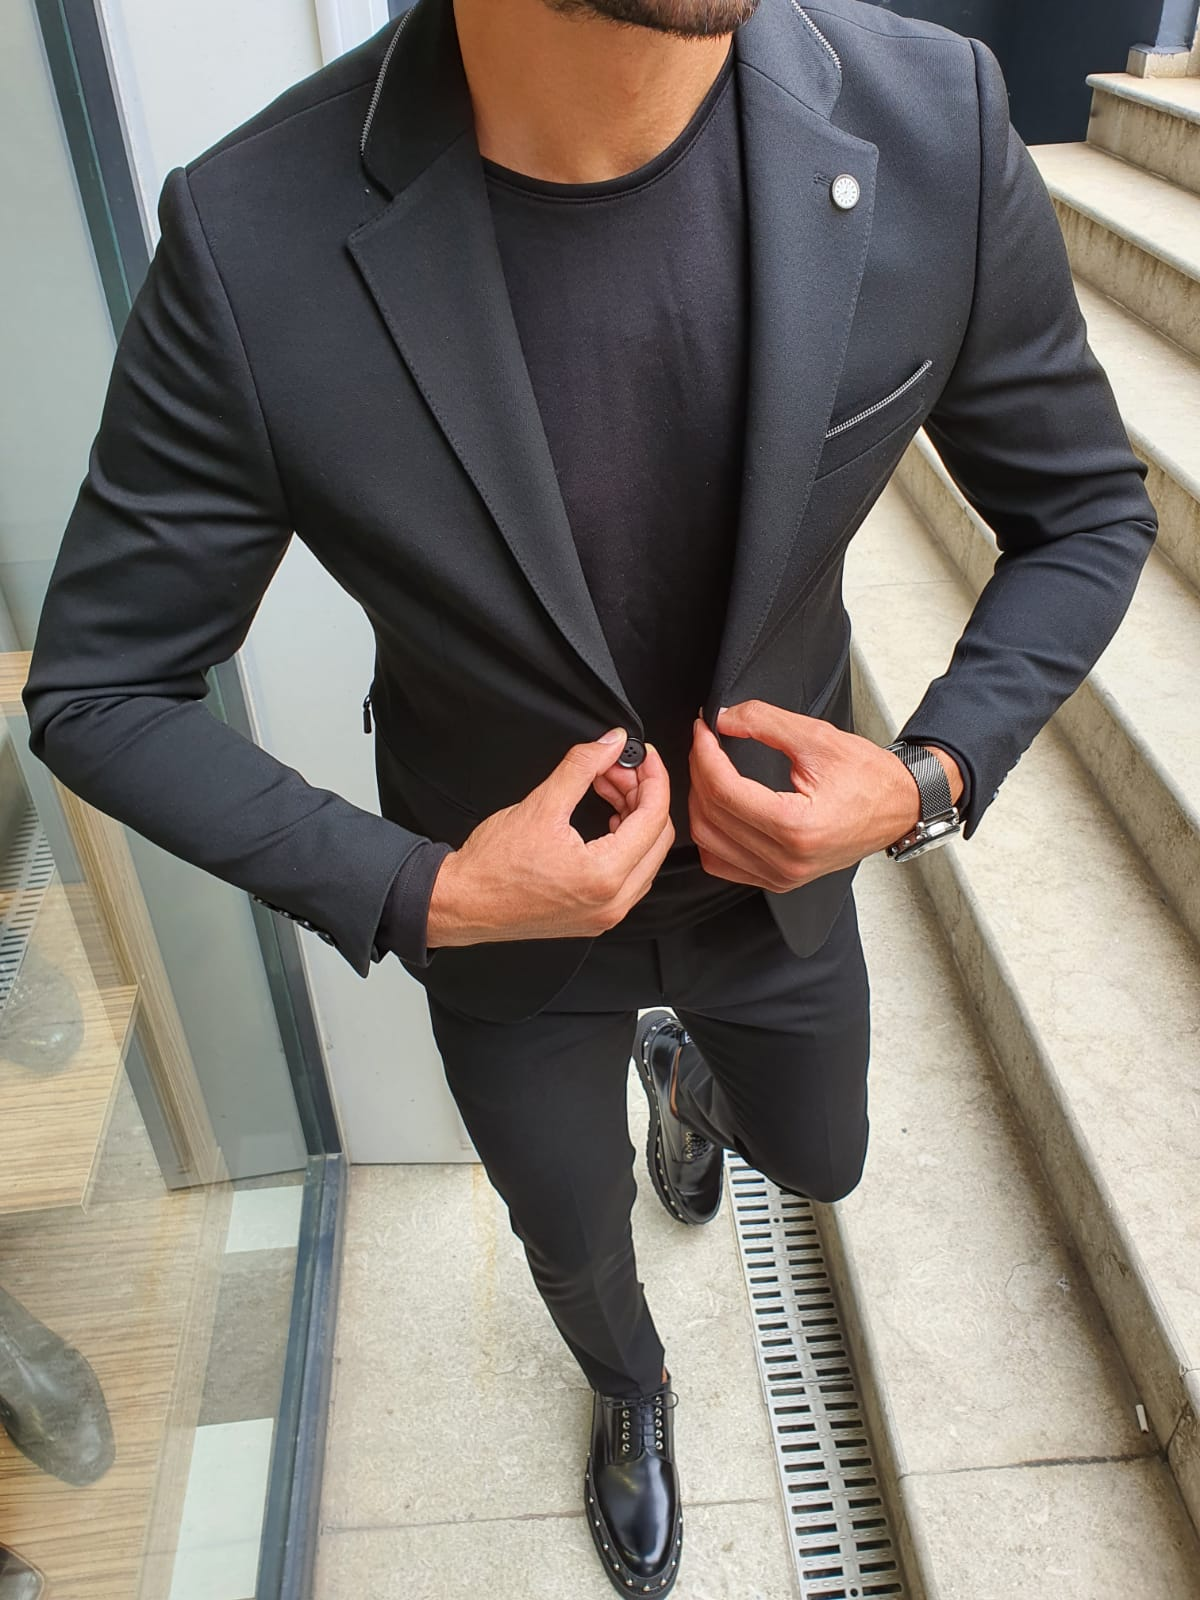 A Suit Without A Tie Will Earn You the Sharpest Casual Look by GentWith Blog